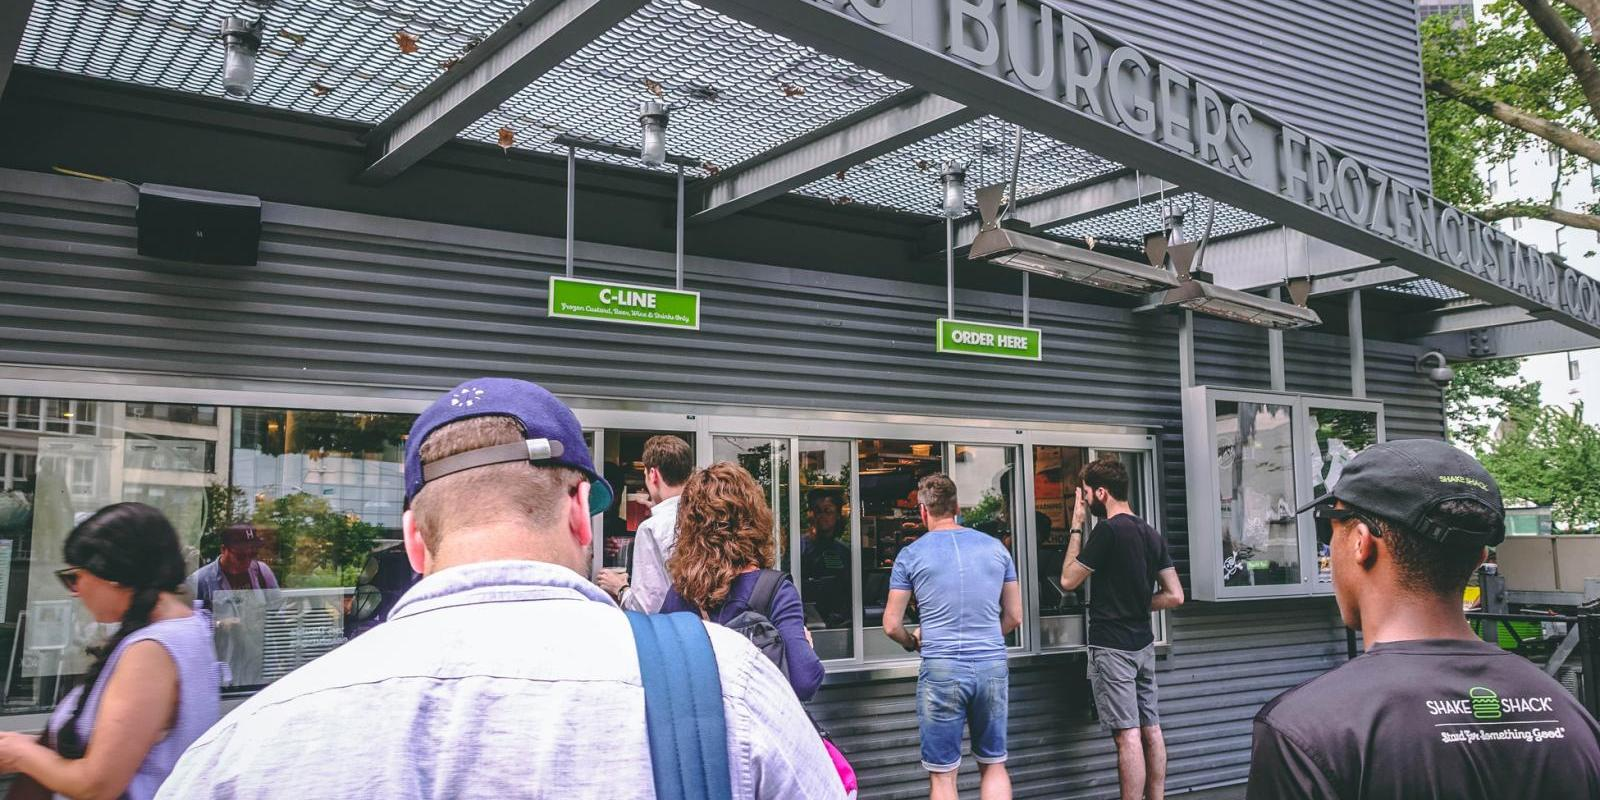 Shake Shack New York - The Best Burger In Town?